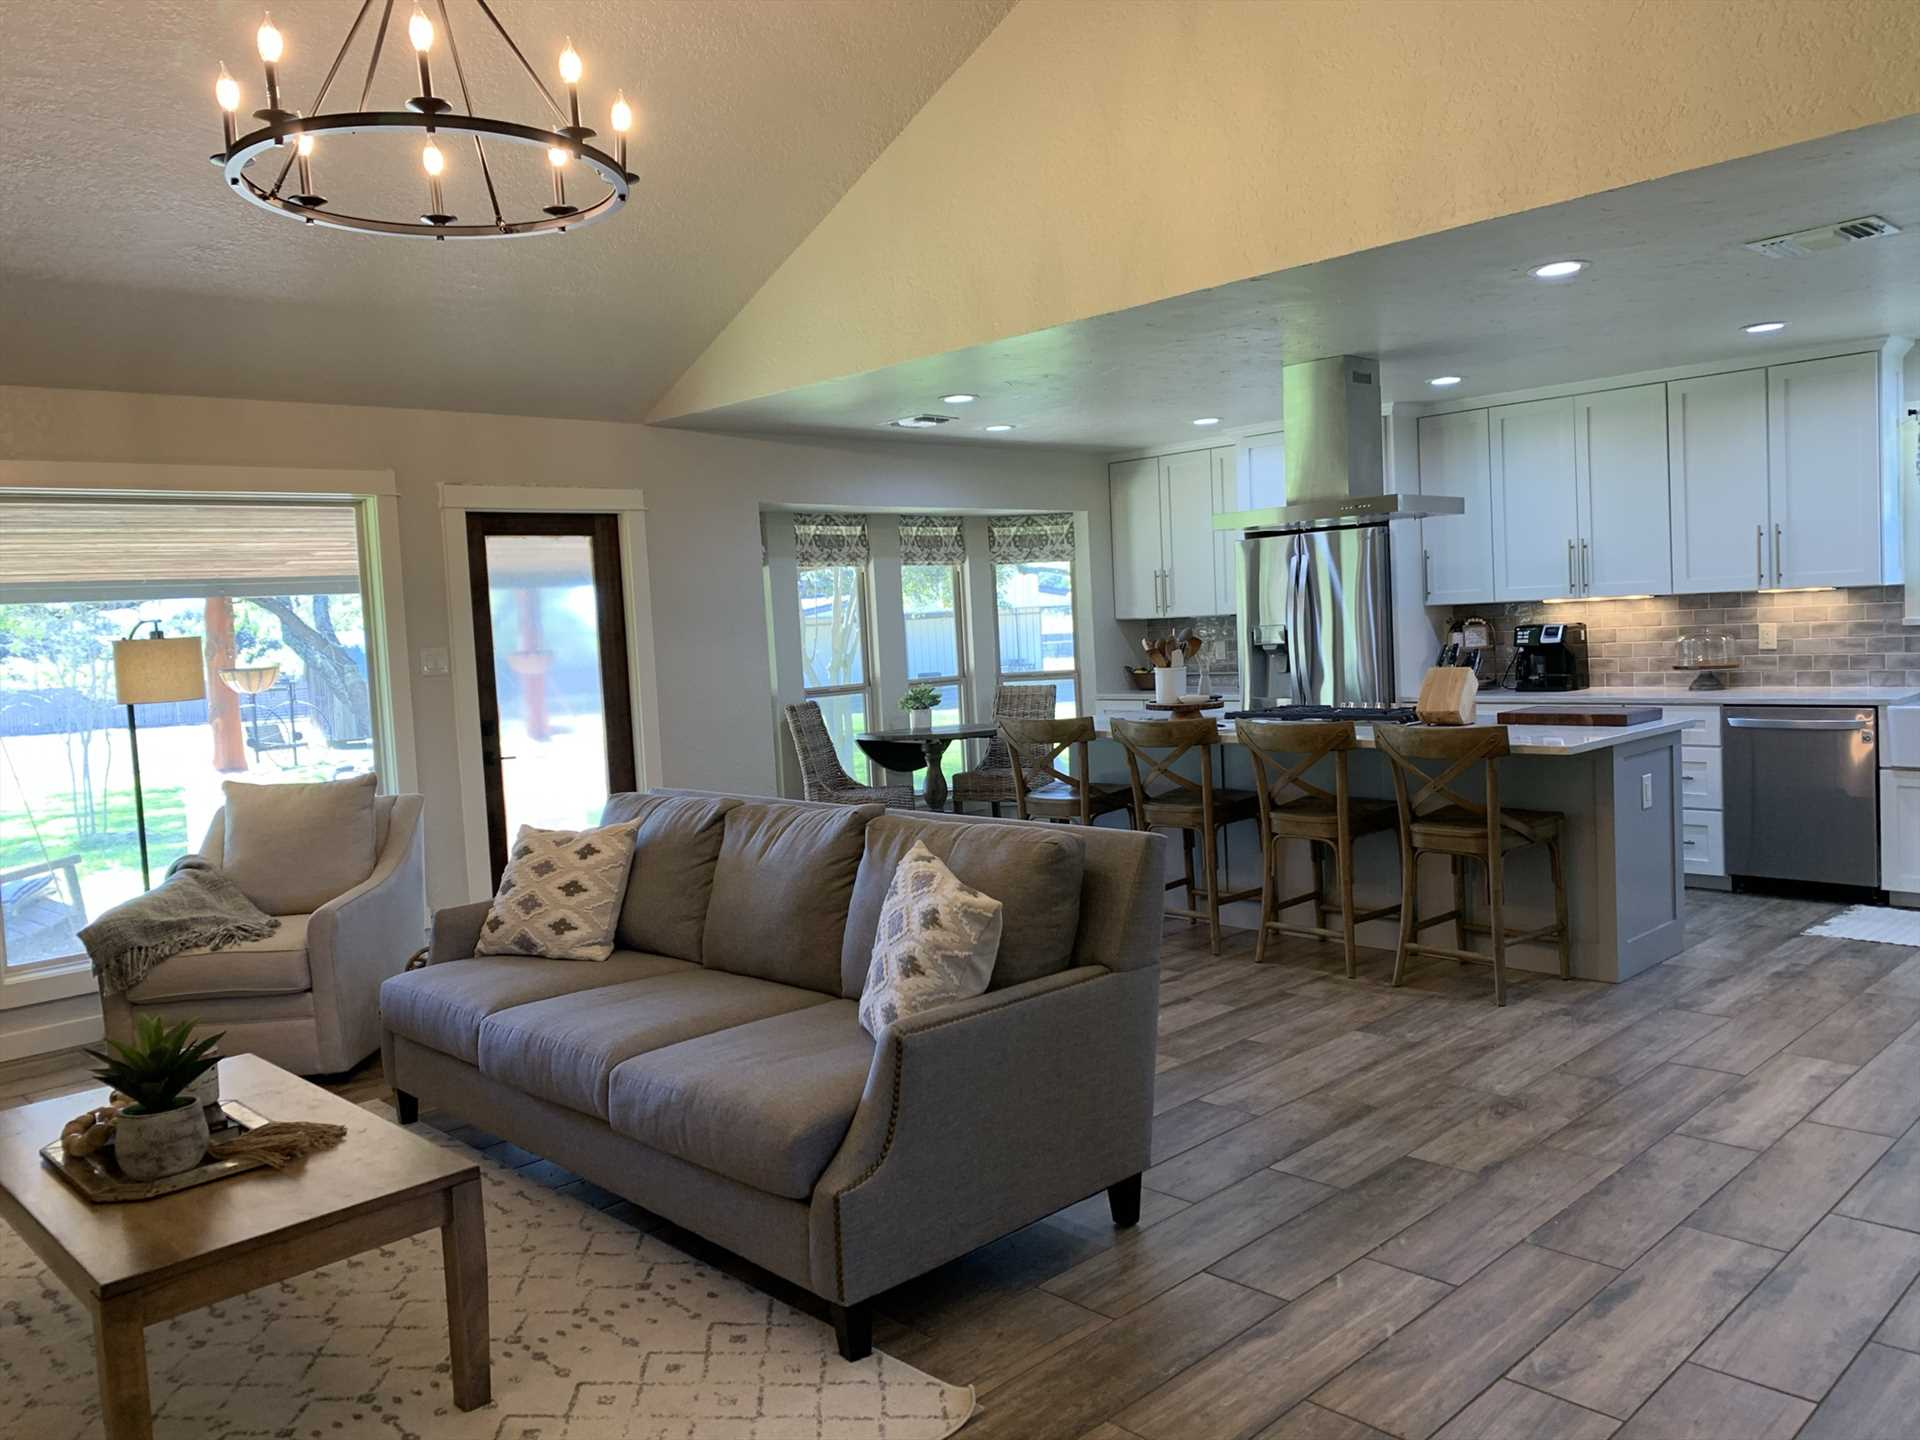 With a chandelier suspended from a vaulted ceiling and plenty of windows, the living area offers a regal space for entertainment and conversation. Cable TV and Wifi service help with that, too!